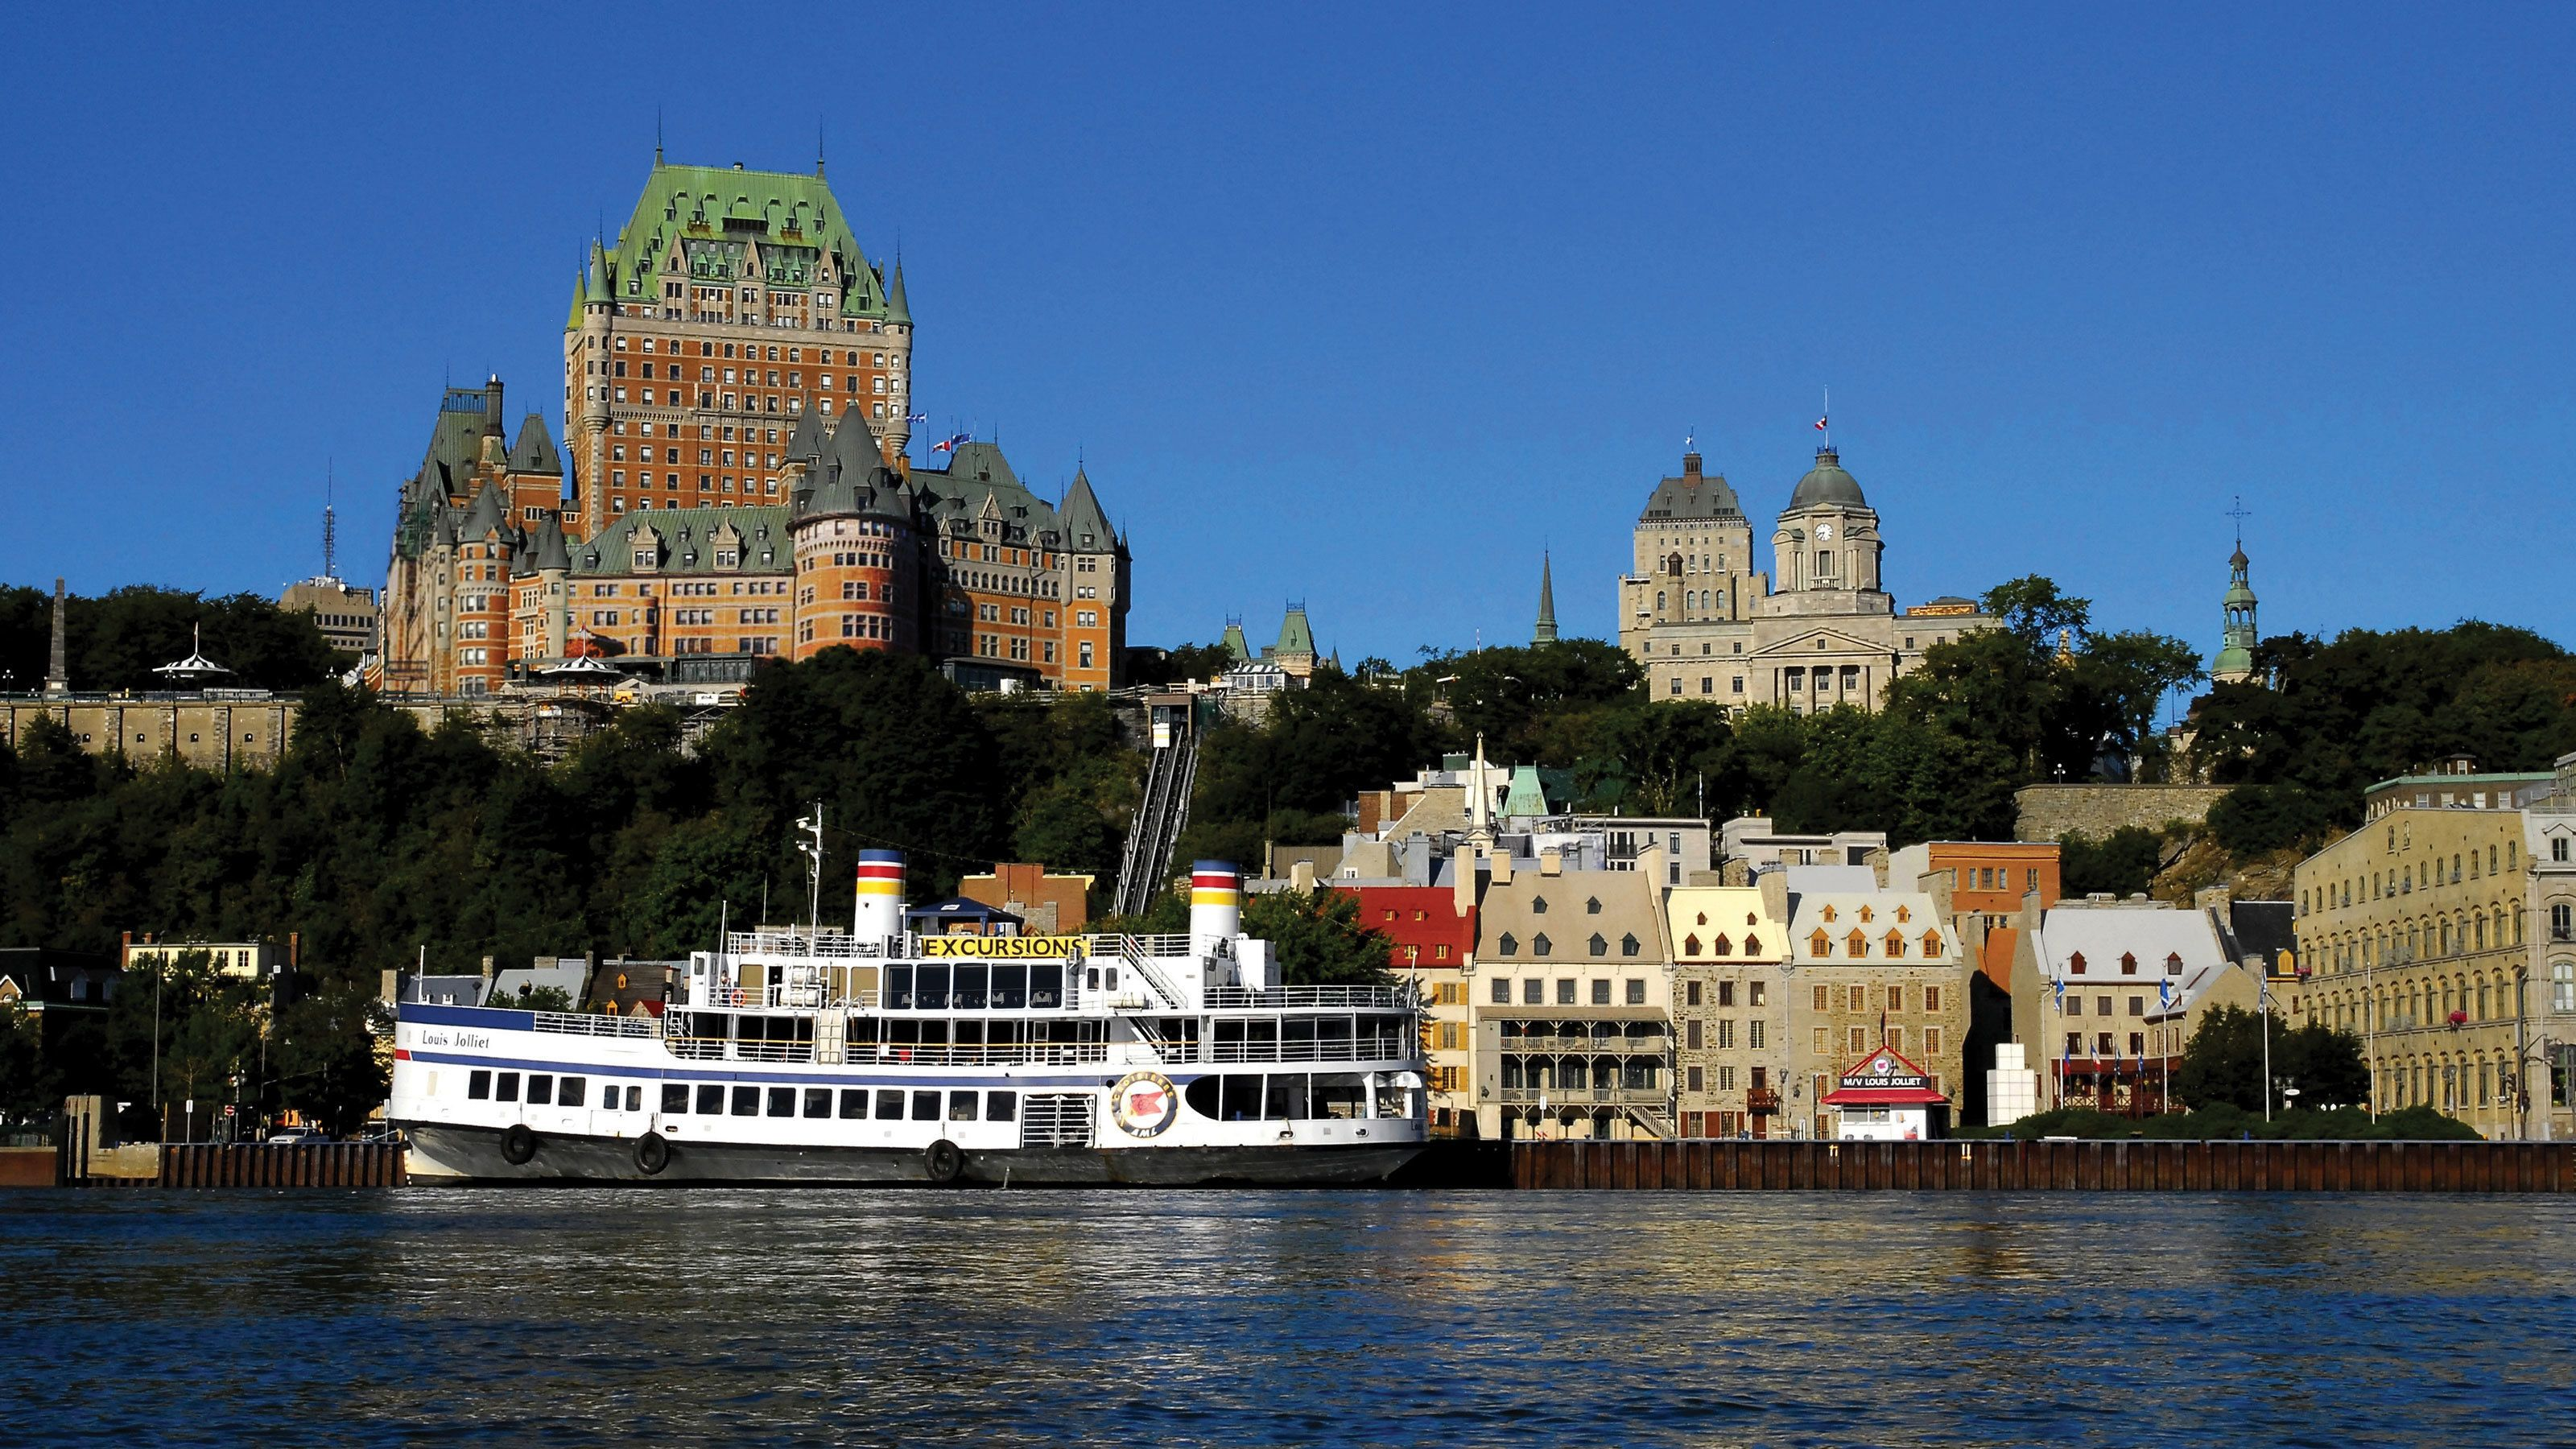 Boat passing in front of old buildings on the waterfront in Quebec City.